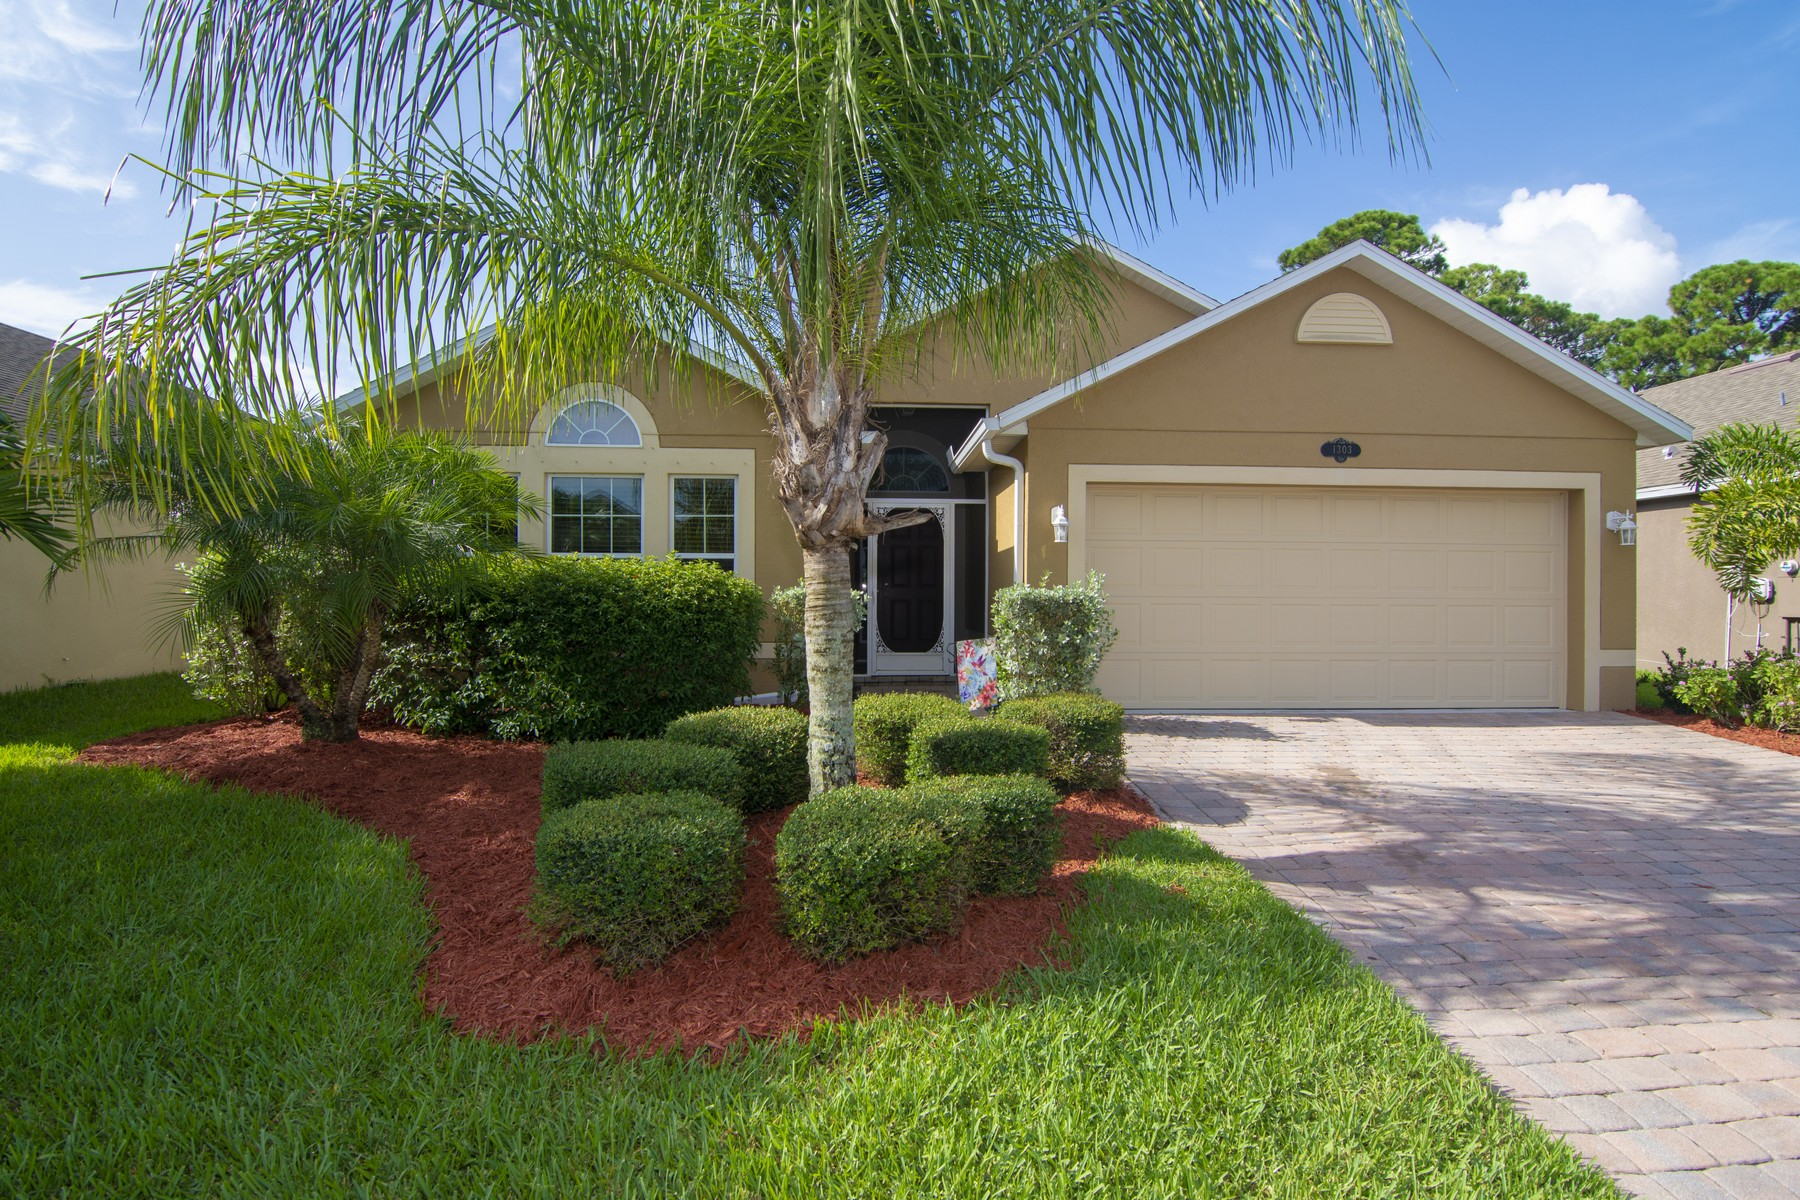 Single Family Homes for Sale at Marvelous Four Bedroom Home That Backs to Preserve Area 1303 Lexington Square SW Vero Beach, Florida 32962 United States